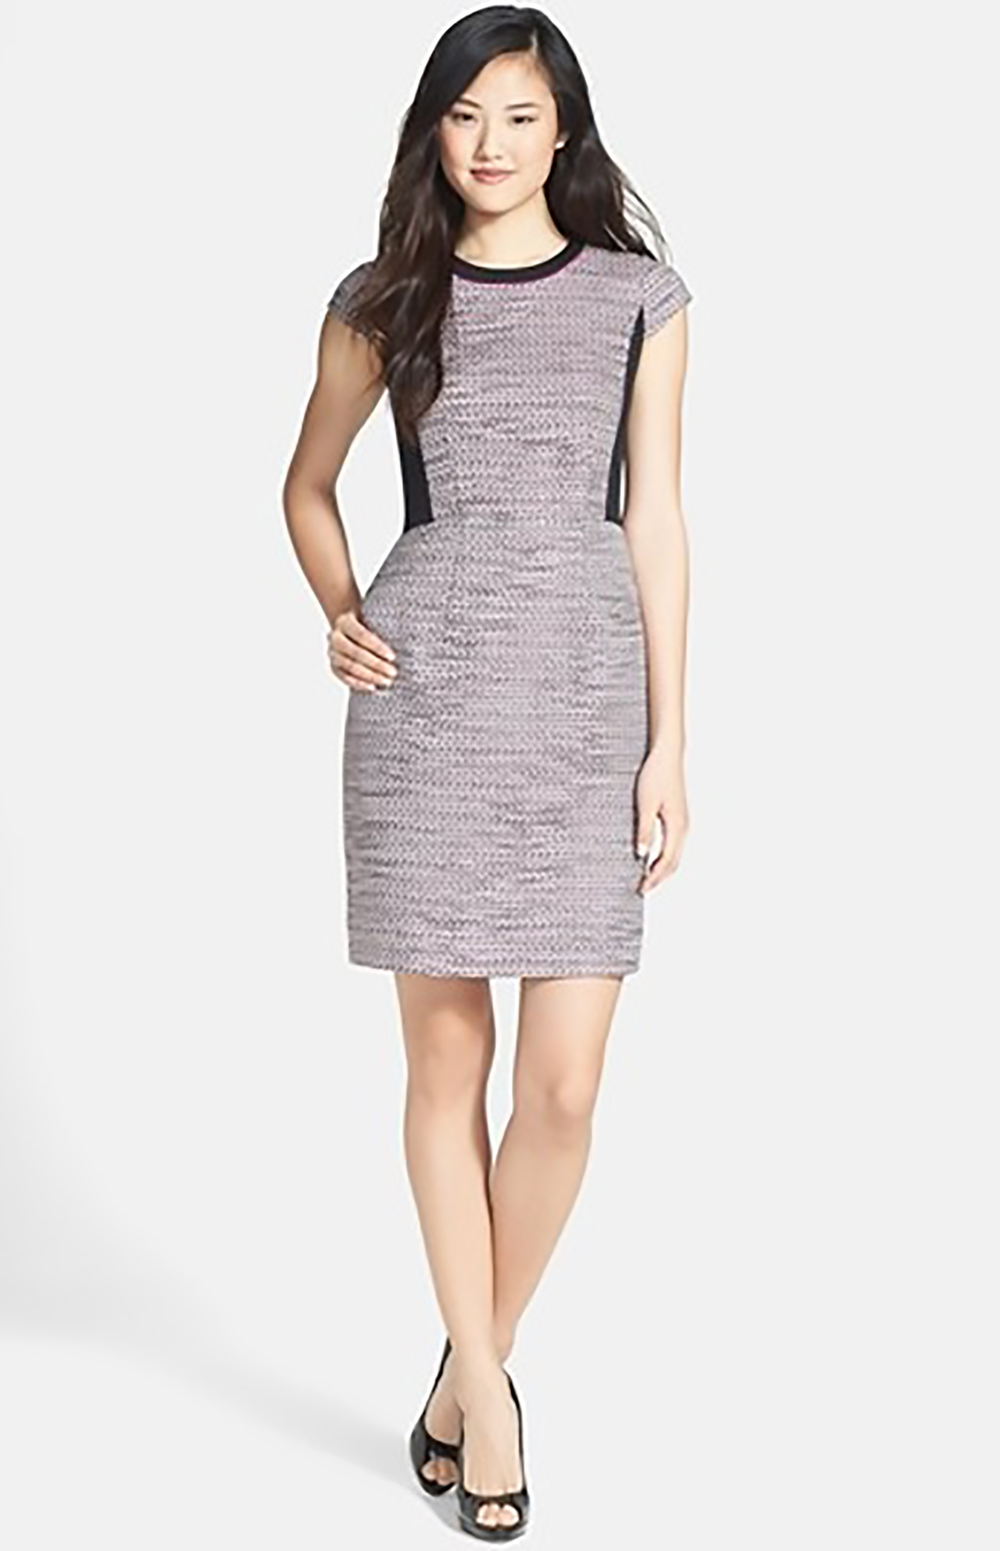 nordstrom halogen tweed & stretch knit sheath dress 1500.jpg